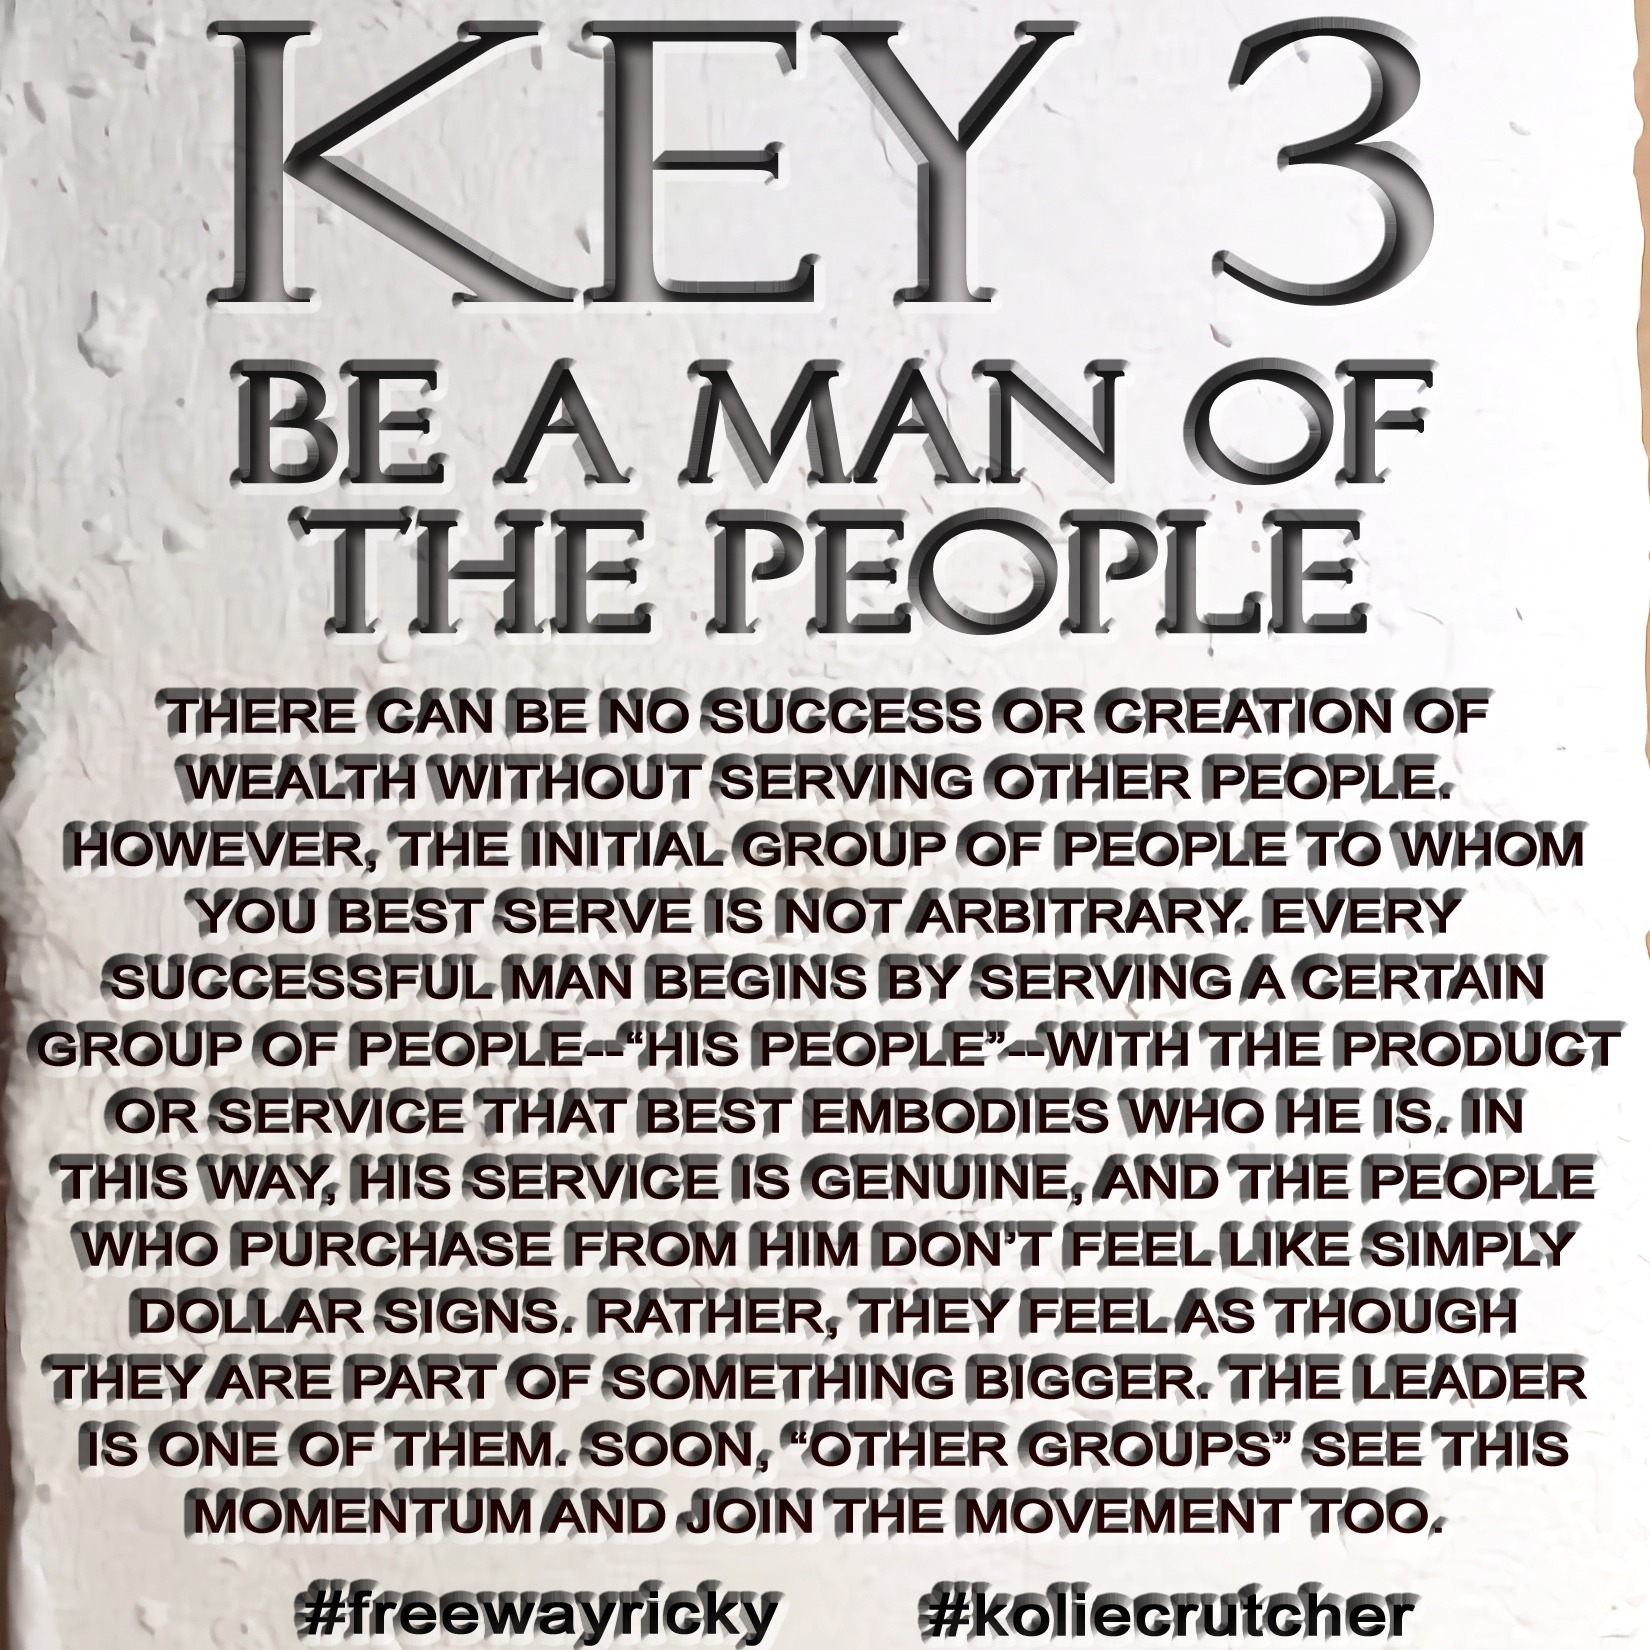 THE 21 KEYS OF SUCCESS: Ridin' With Rick